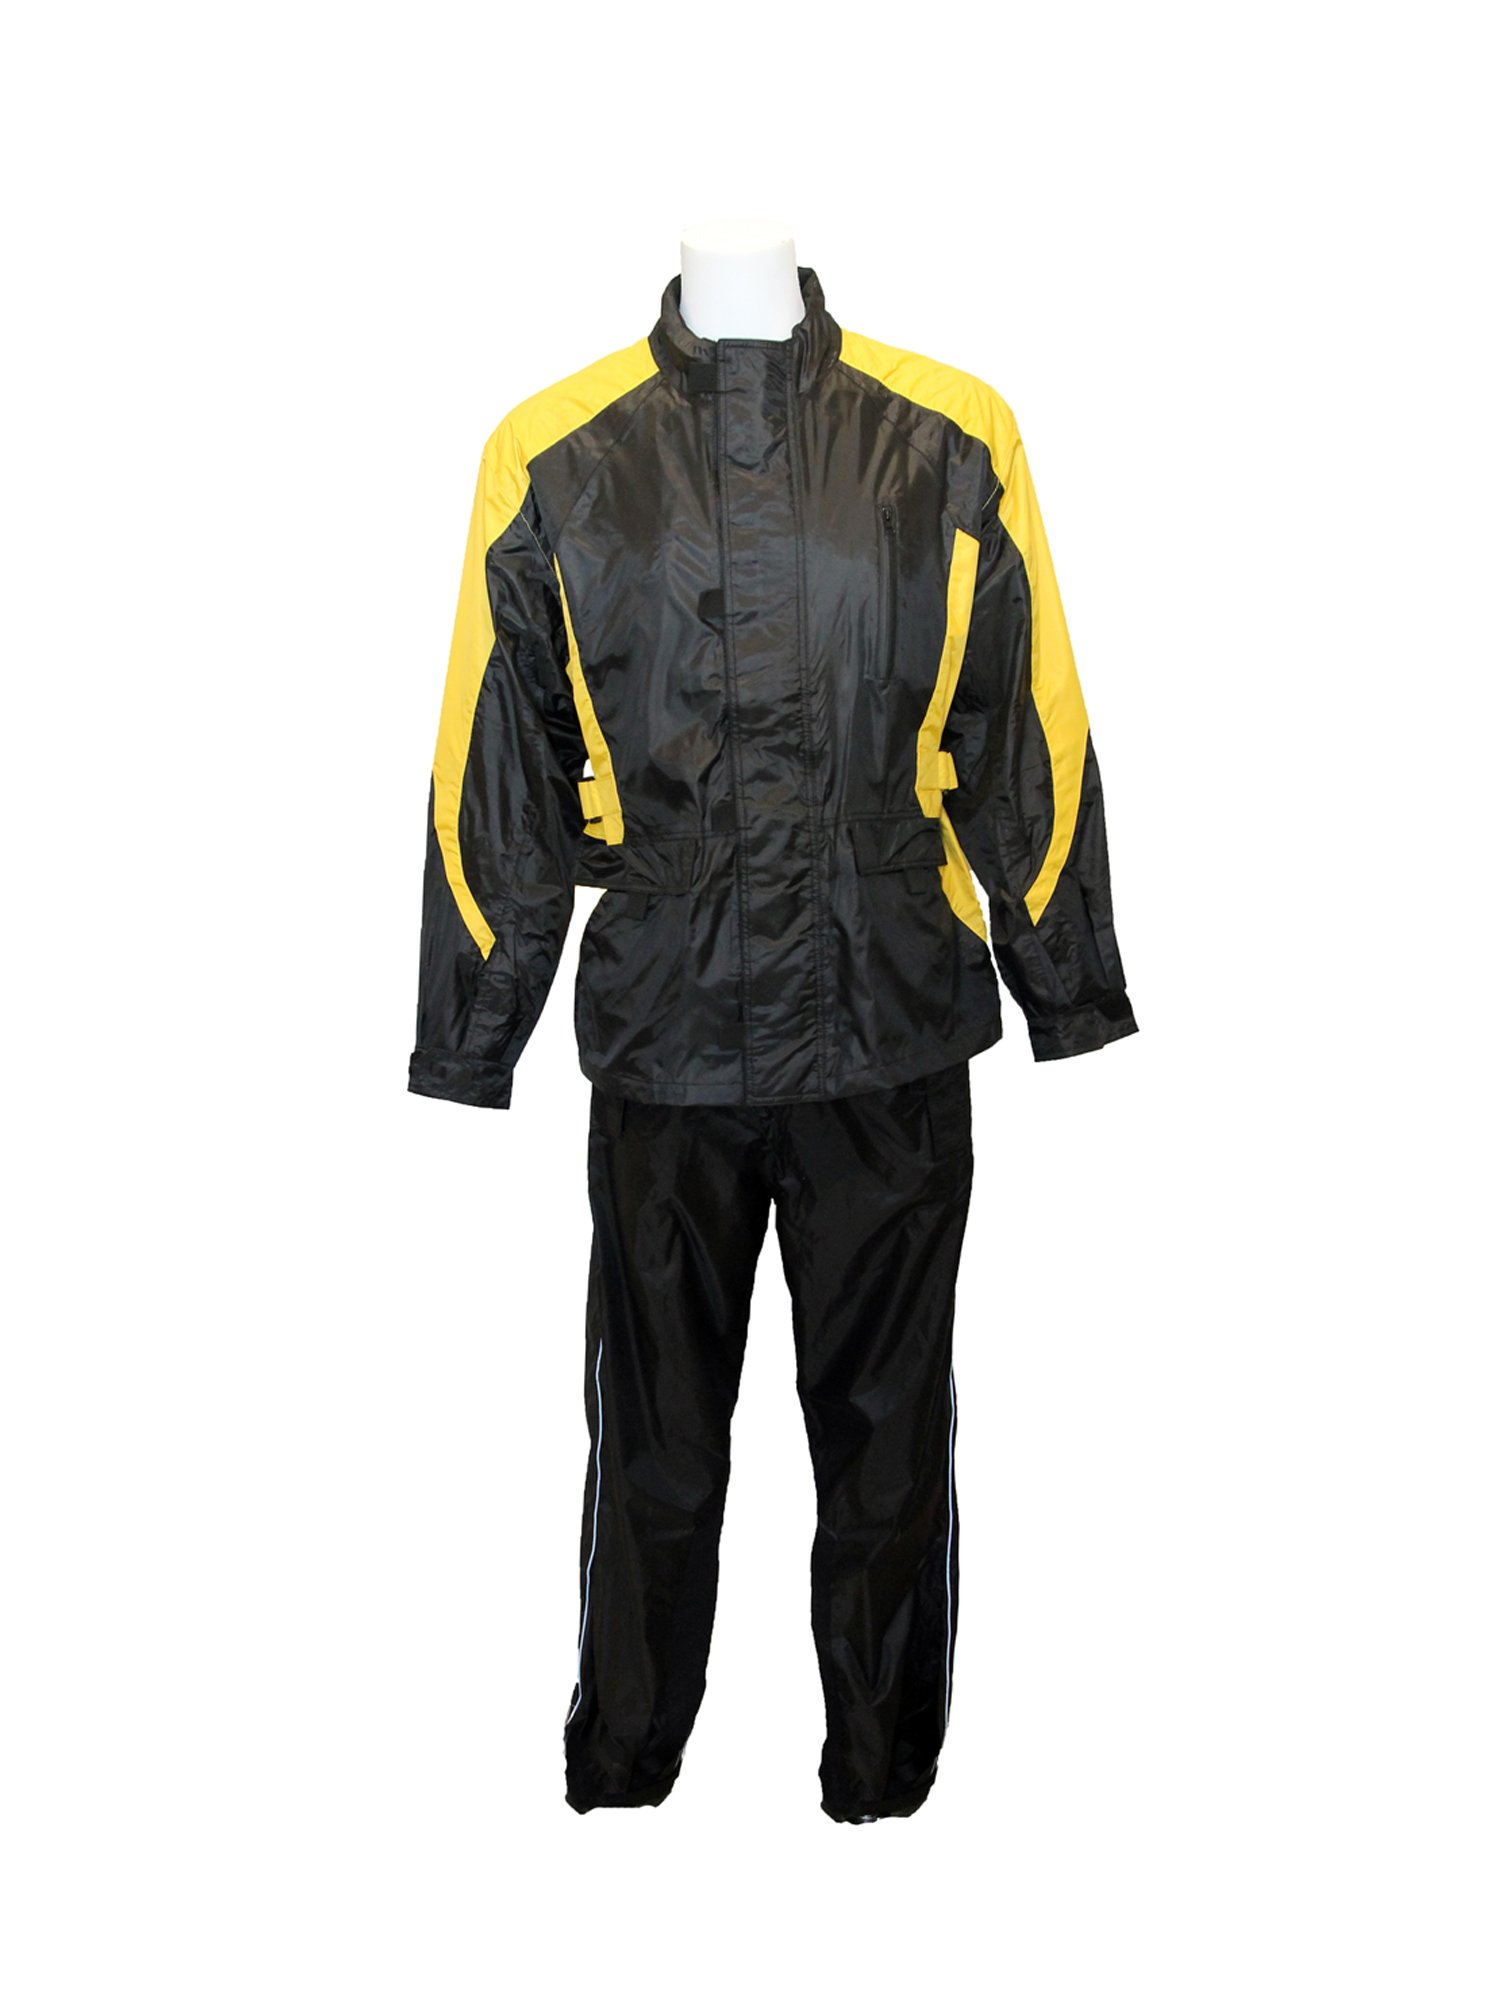 RoadDog 2 Piece Stay-Dry Motorcycle Rain Suit Waterproof Adult Unisex Yellow 2XL